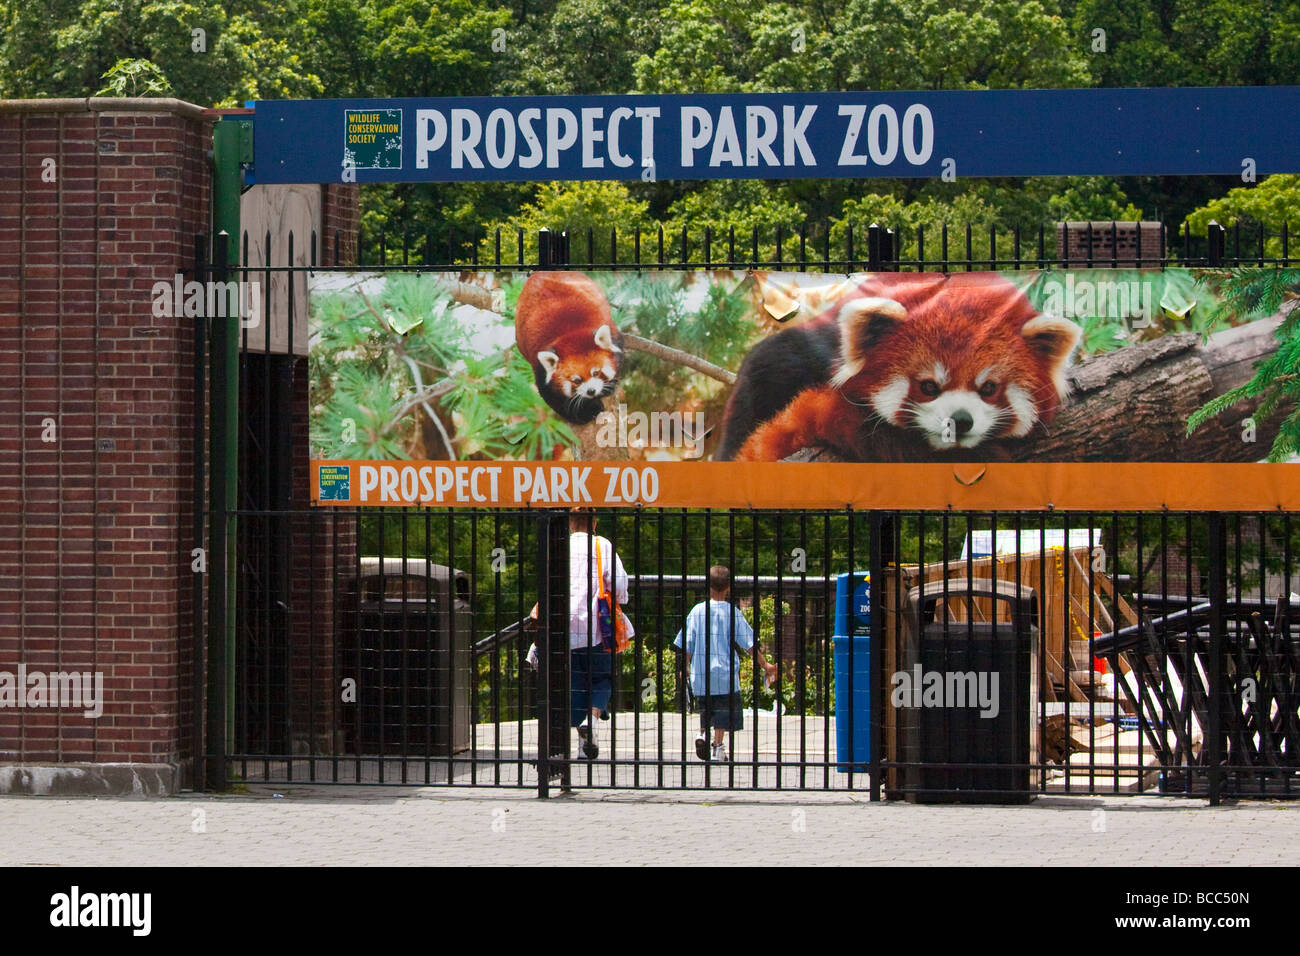 Prospect Park Zoo Images Galleries